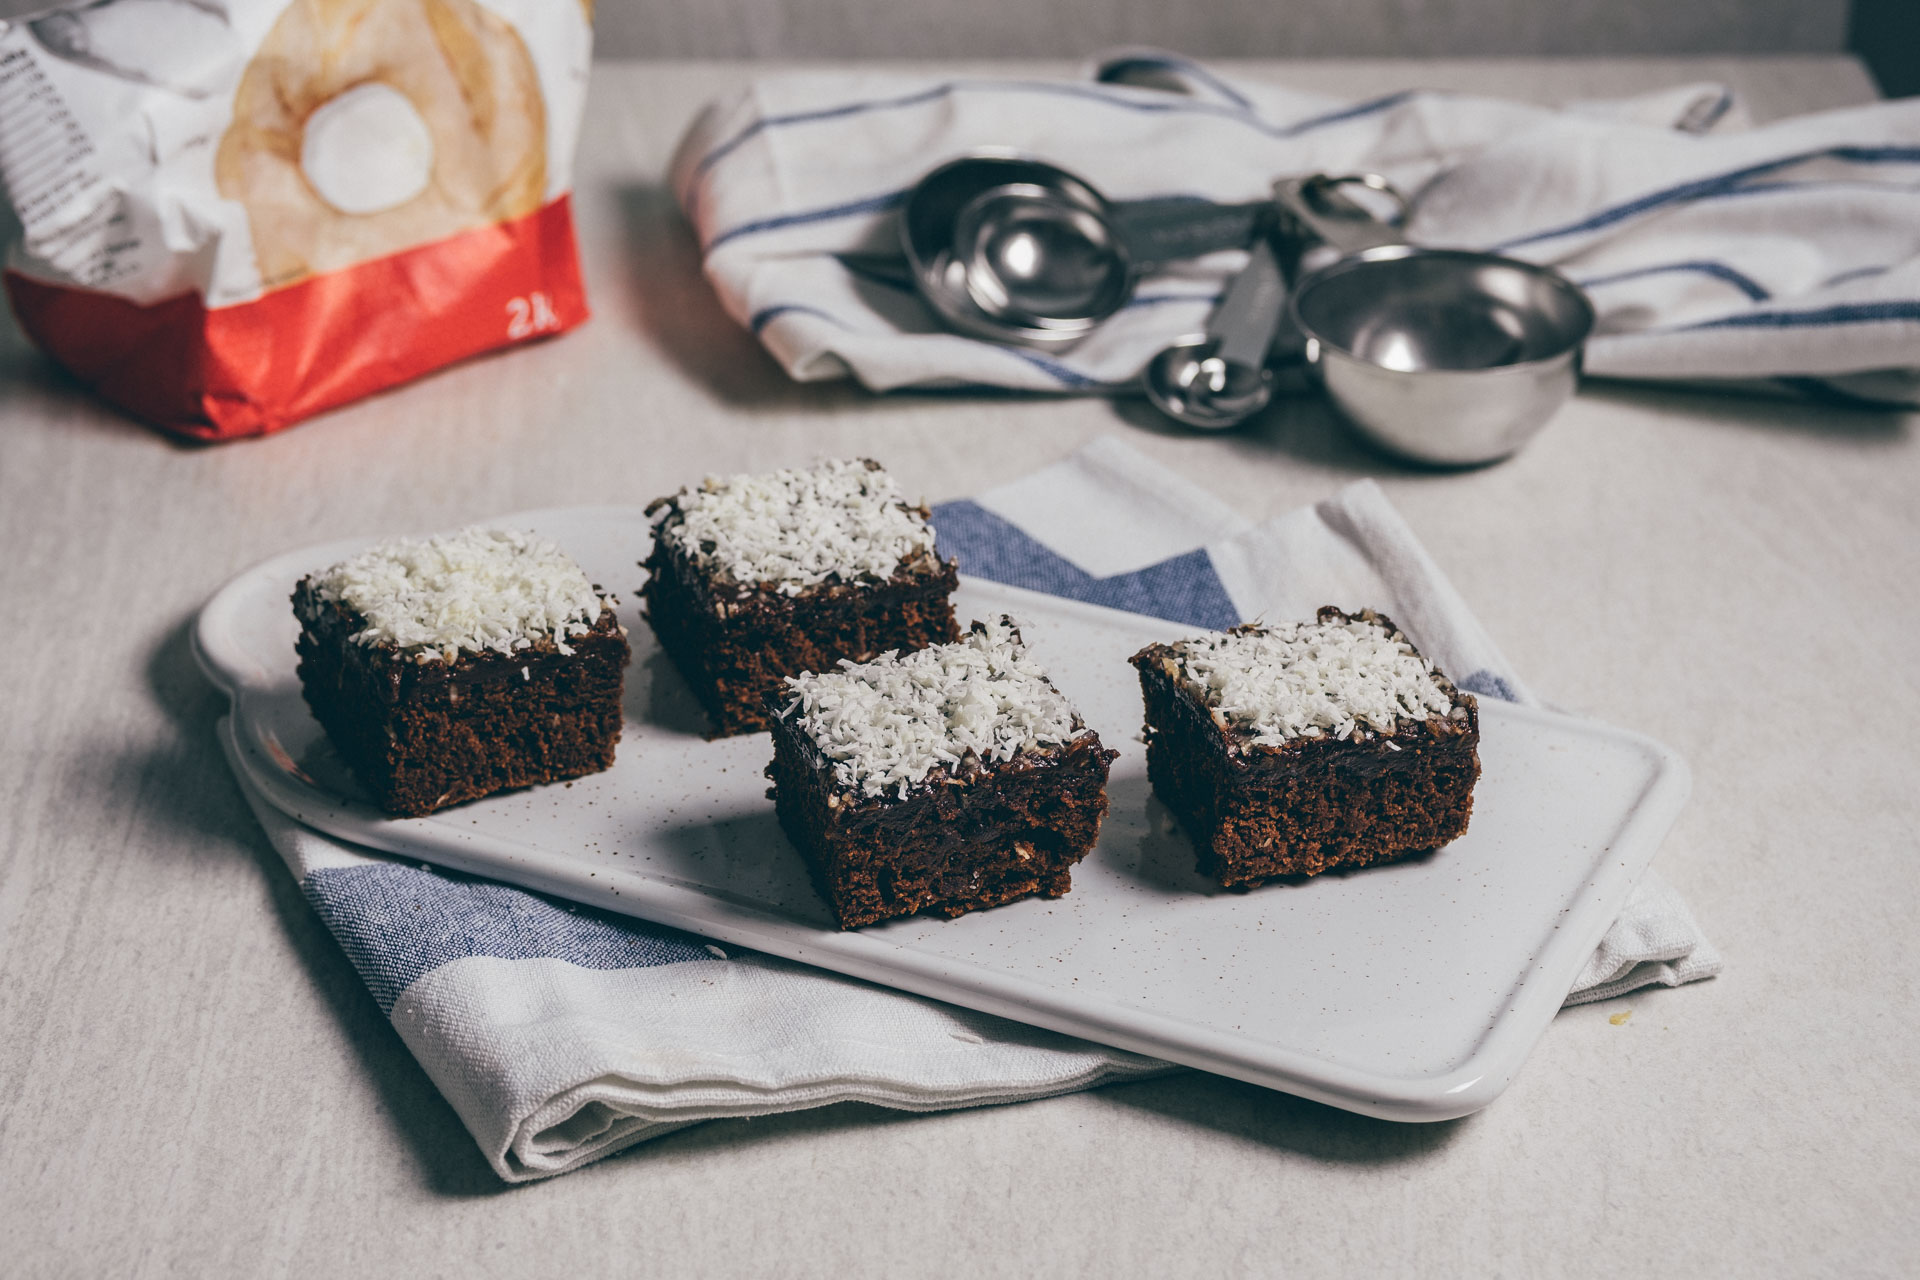 Mocha squares chocolate cake recipe